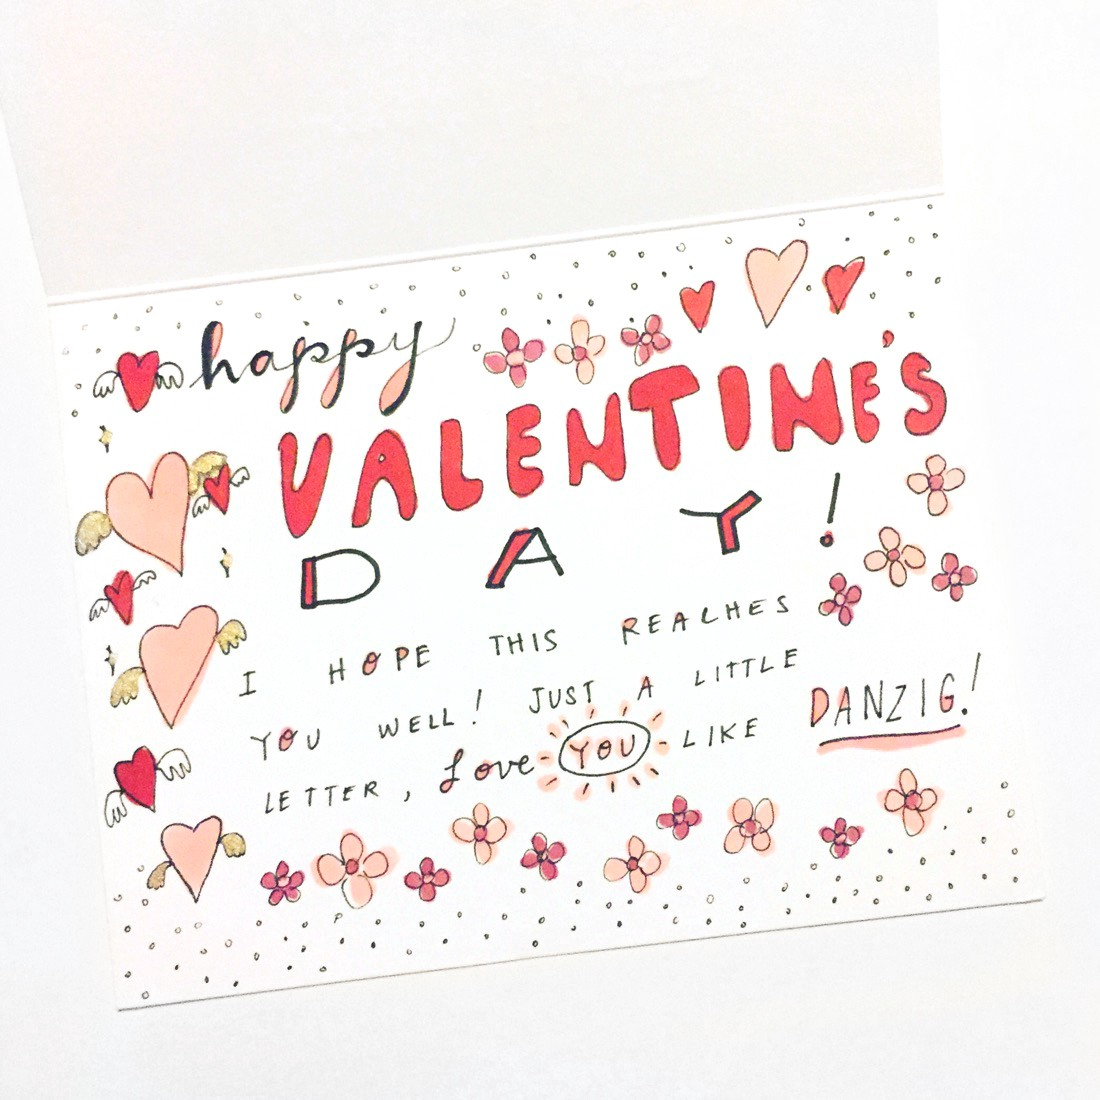 What To Write In Your Valentines Day Cards Punkpost Medium